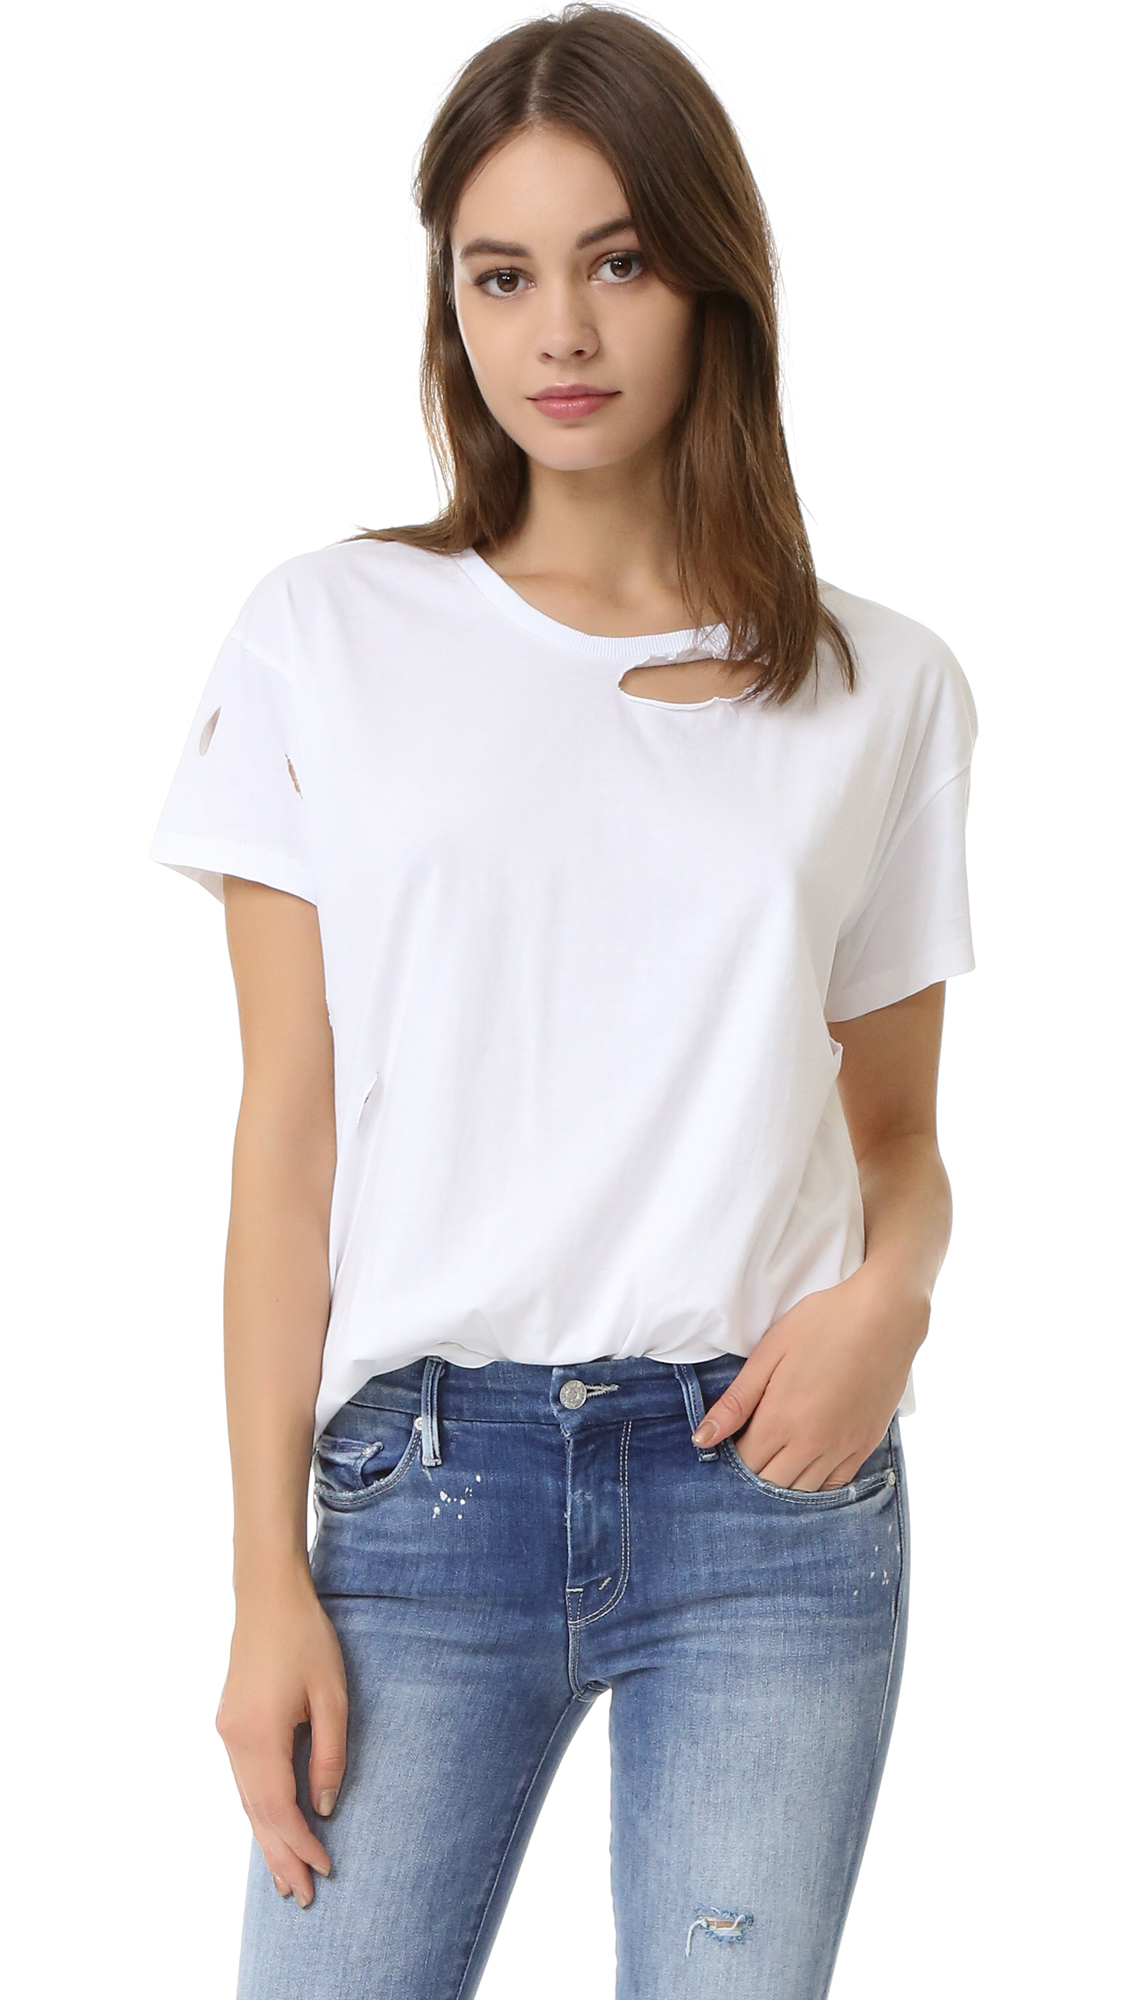 ANINE BING Distressed Tee - White